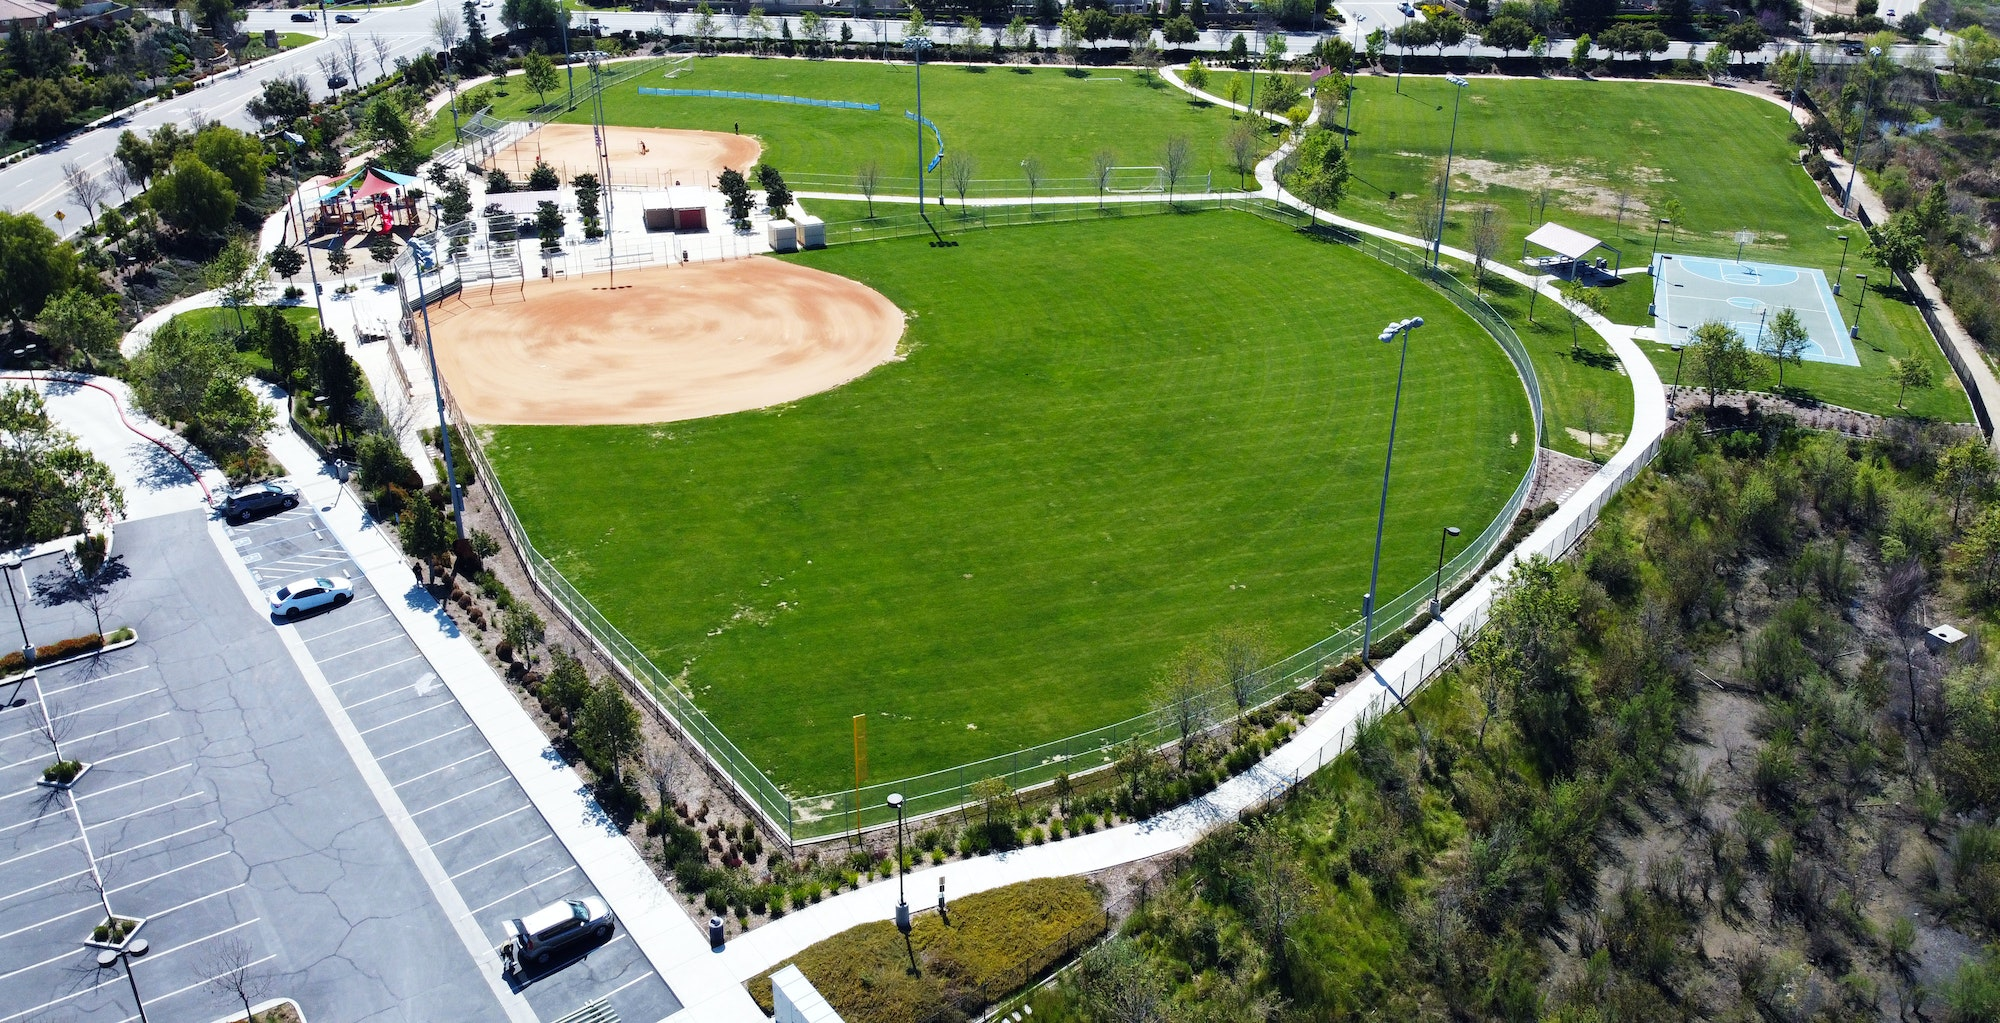 Spencer's Crossing Park, contains baseball fields, grass, basketball court, parking lot, playground, sidewalk